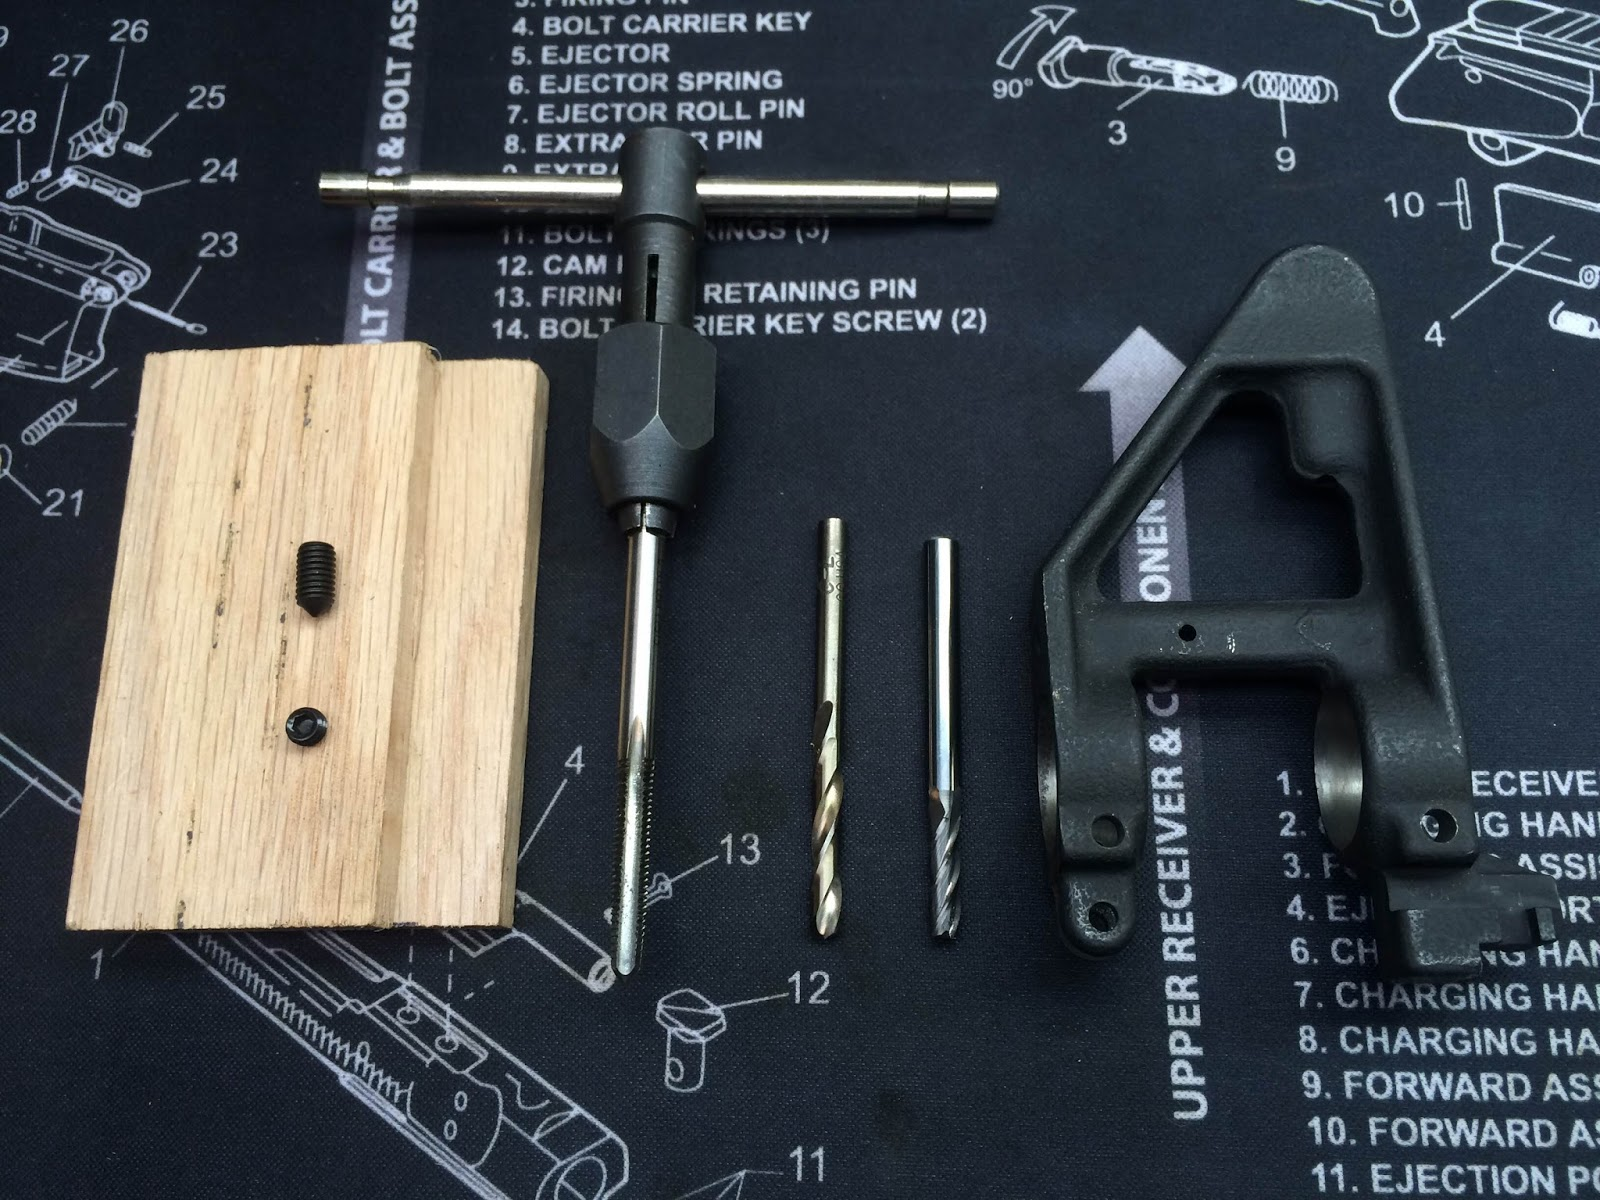 A Catholic Mechanic Diy A2 Front Sight Base Install Drill Press Is Preferable To Hand When Mcmaster Carr Part Number For High Speed Steel 10 32 Through Hole Tap 2522a779 496 Ea Short Length 21 Tin Coated Bit